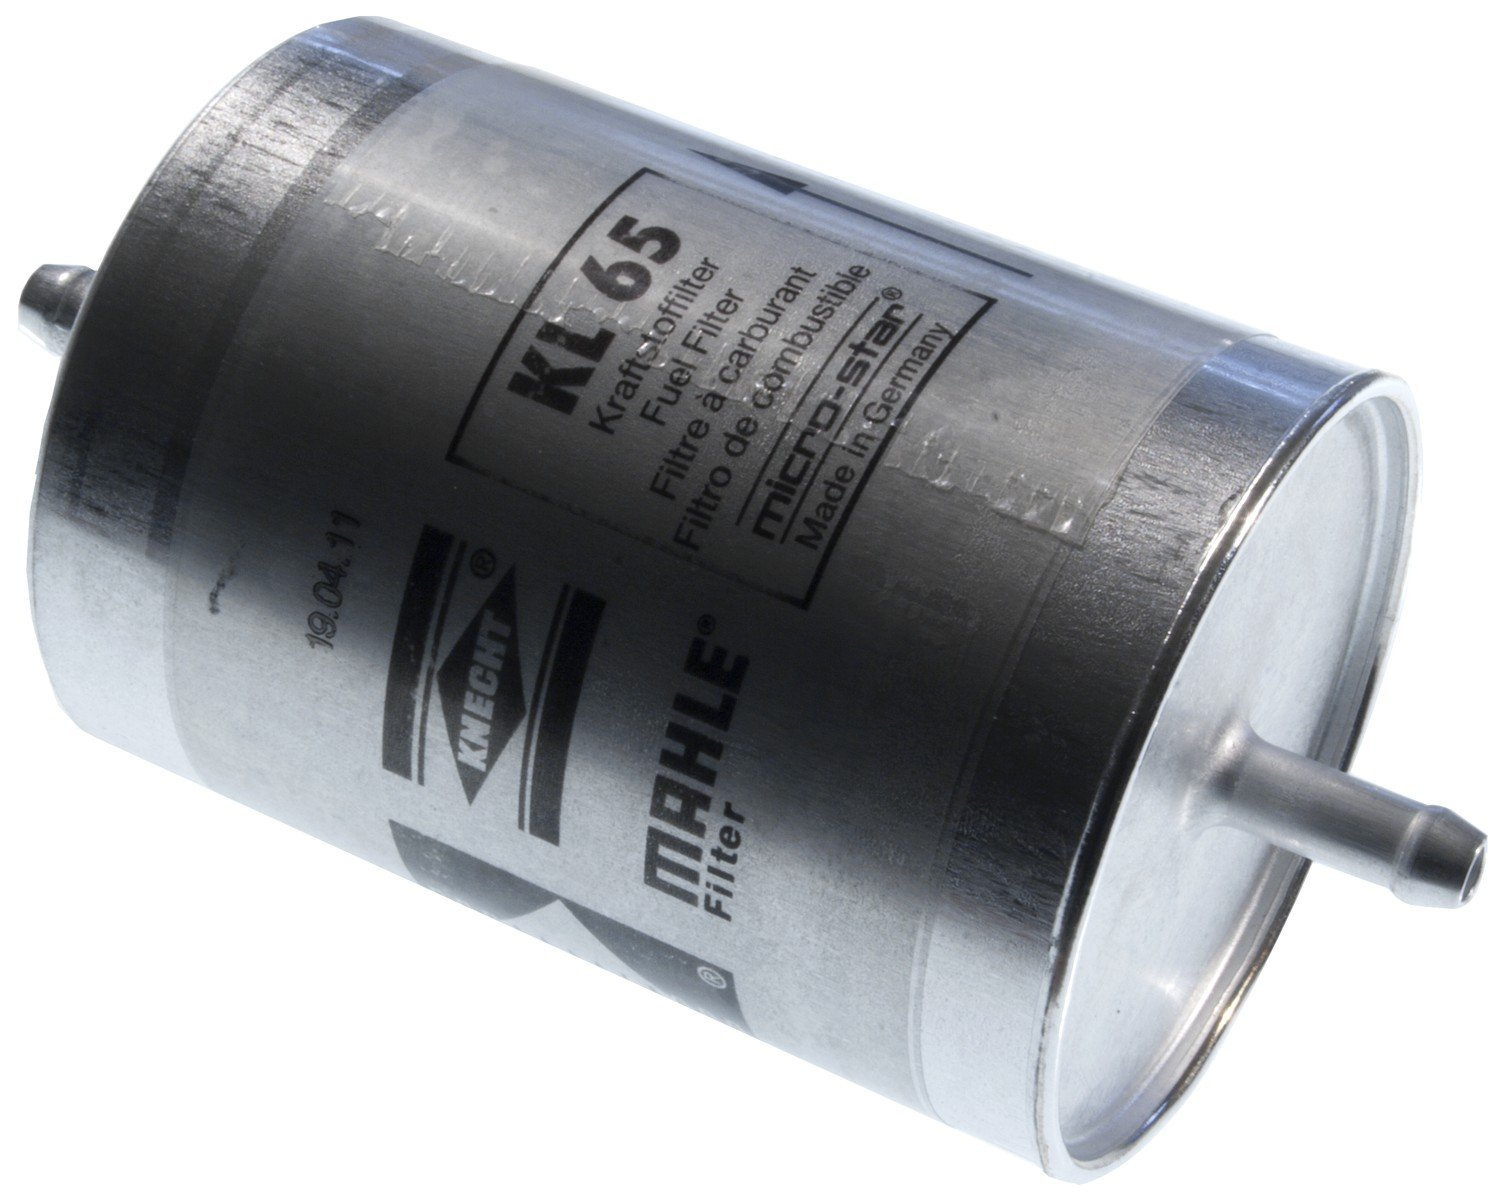 1999 Mercedes Benz C230 Fuel Filter Ml320 Location M1 Kl 65